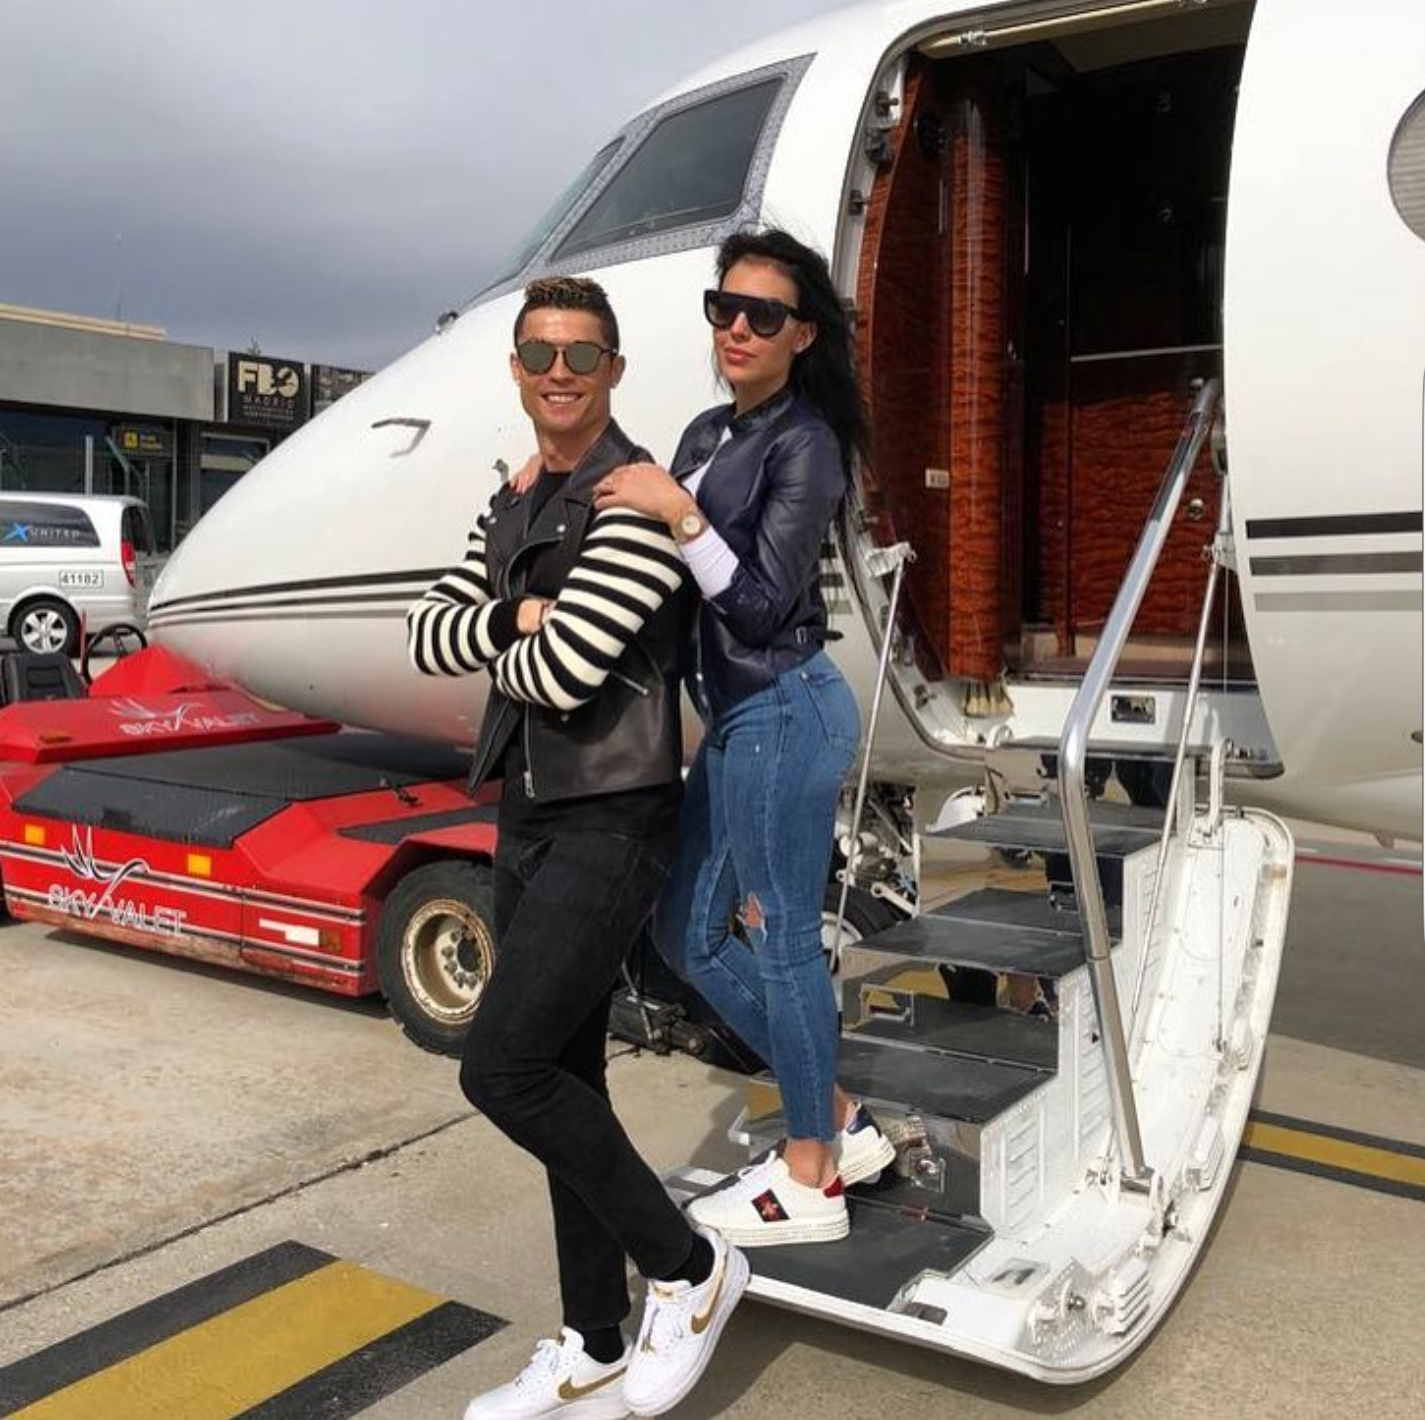 5a8c568c3cf91 - Cristiano Ronaldo share stylish photo of himself and girlfriend, Georgina Rodriguez